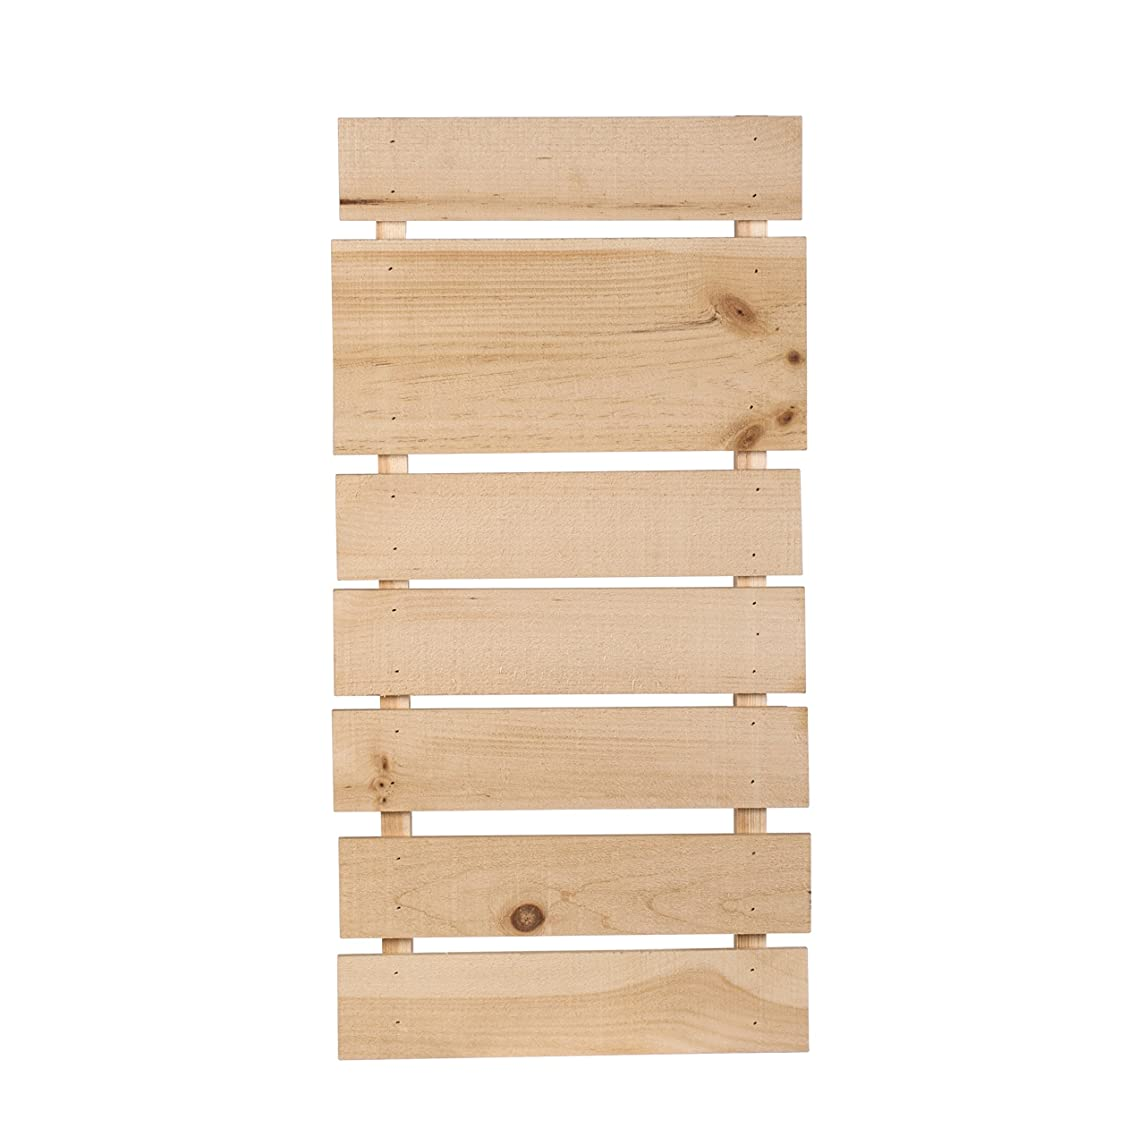 Walnut Hollow Rustic Pallet, 24 by 12-Inch